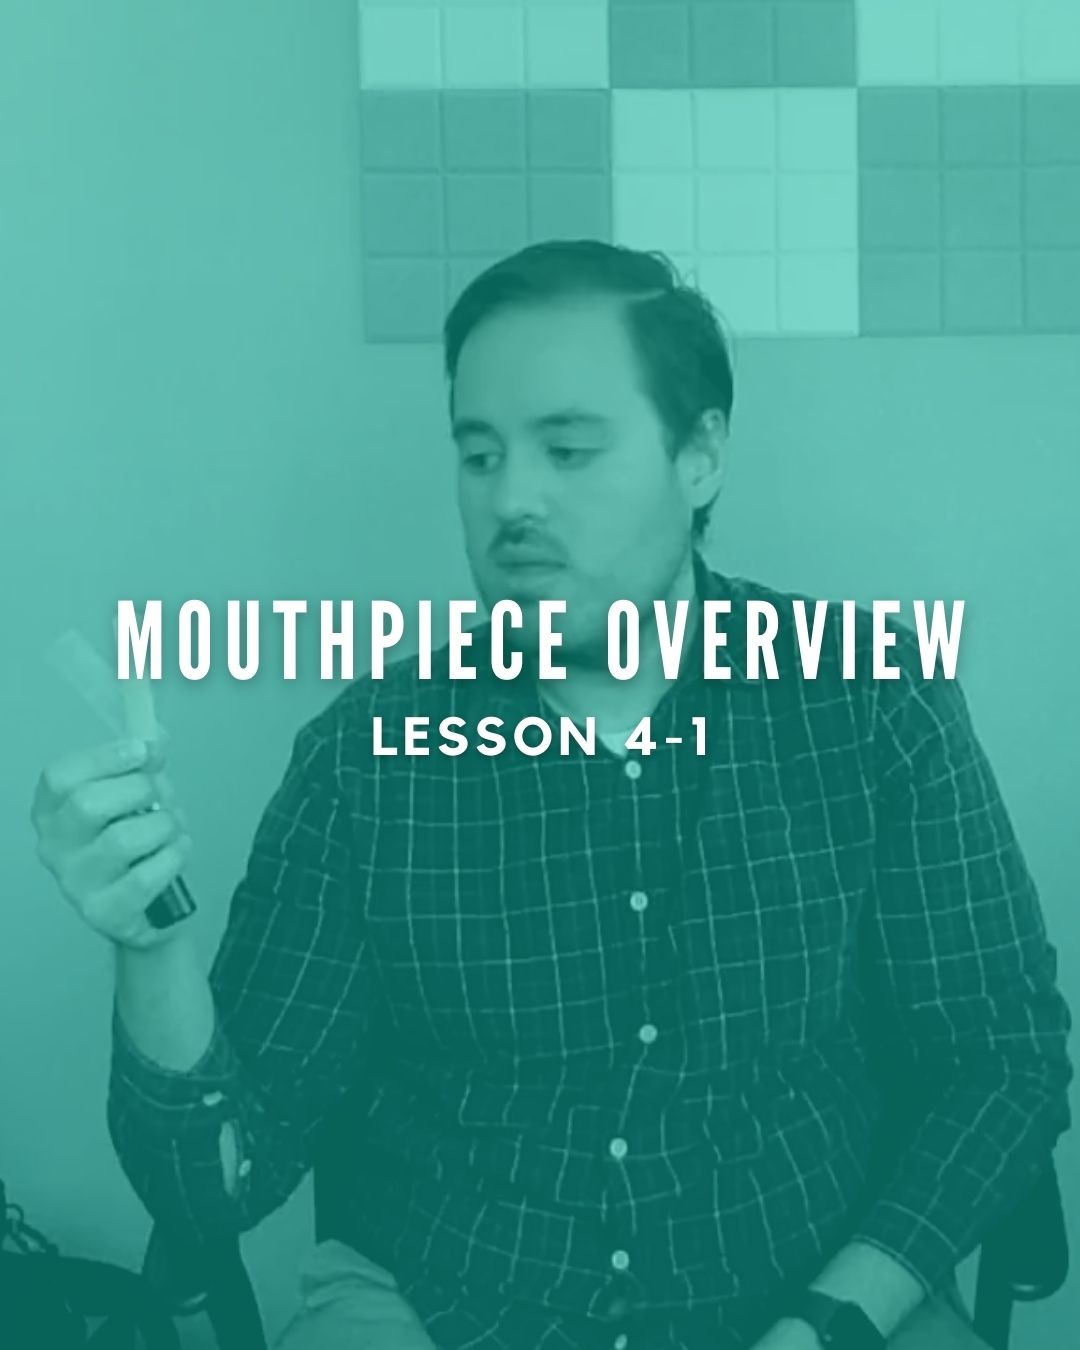 Mouthpiece Overview